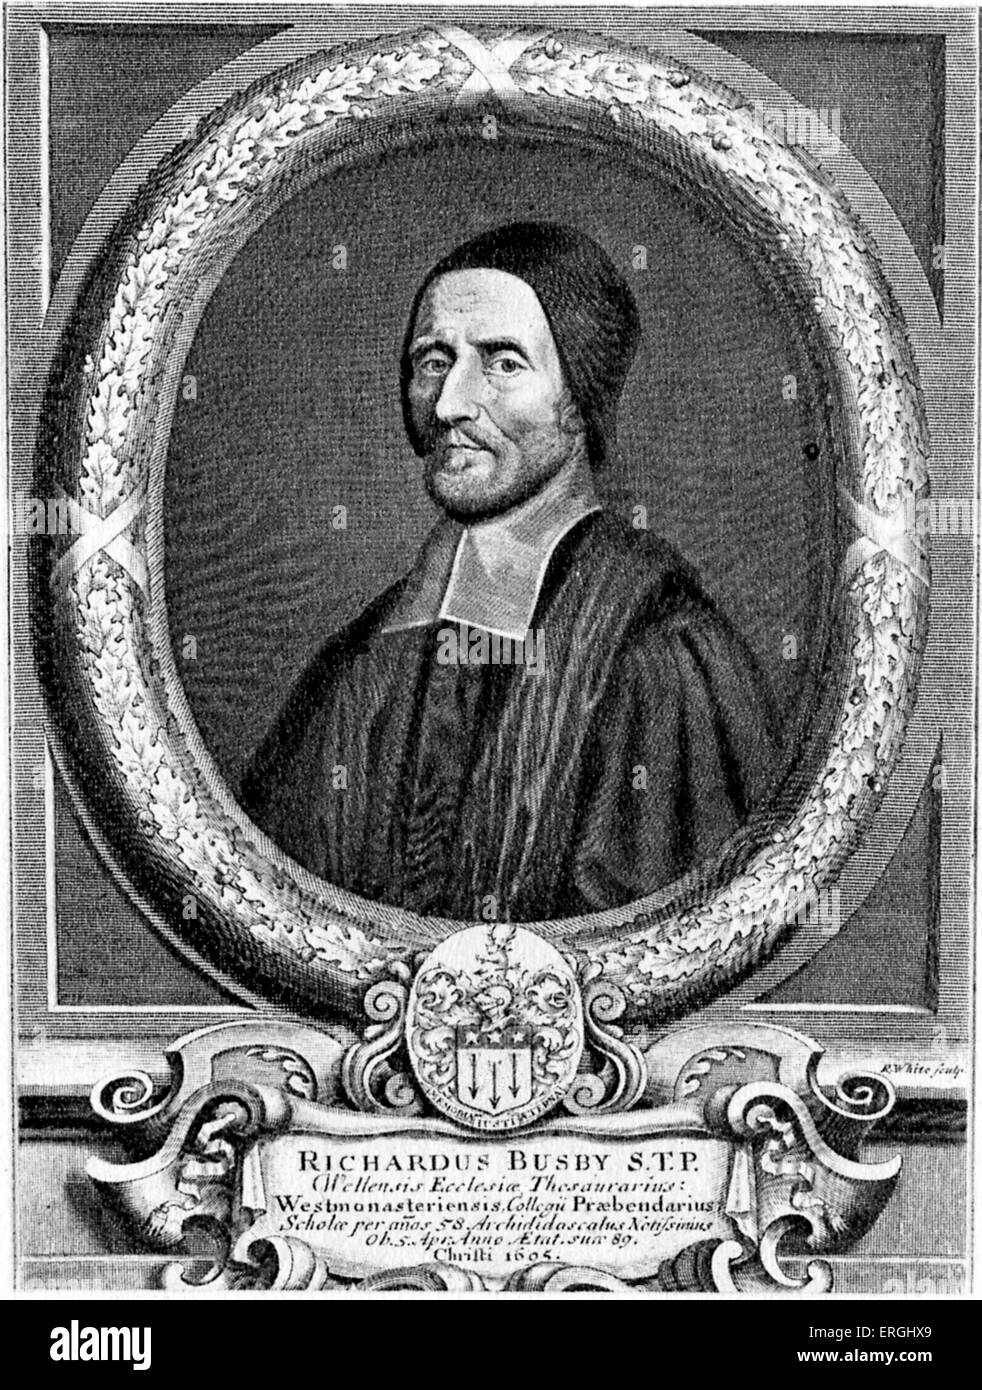 Richard Busby of Westminster, 1606 - 1695. Engraving after a painting by Henry Tilson (1659 - 1695). RB: Anglican - Stock Image